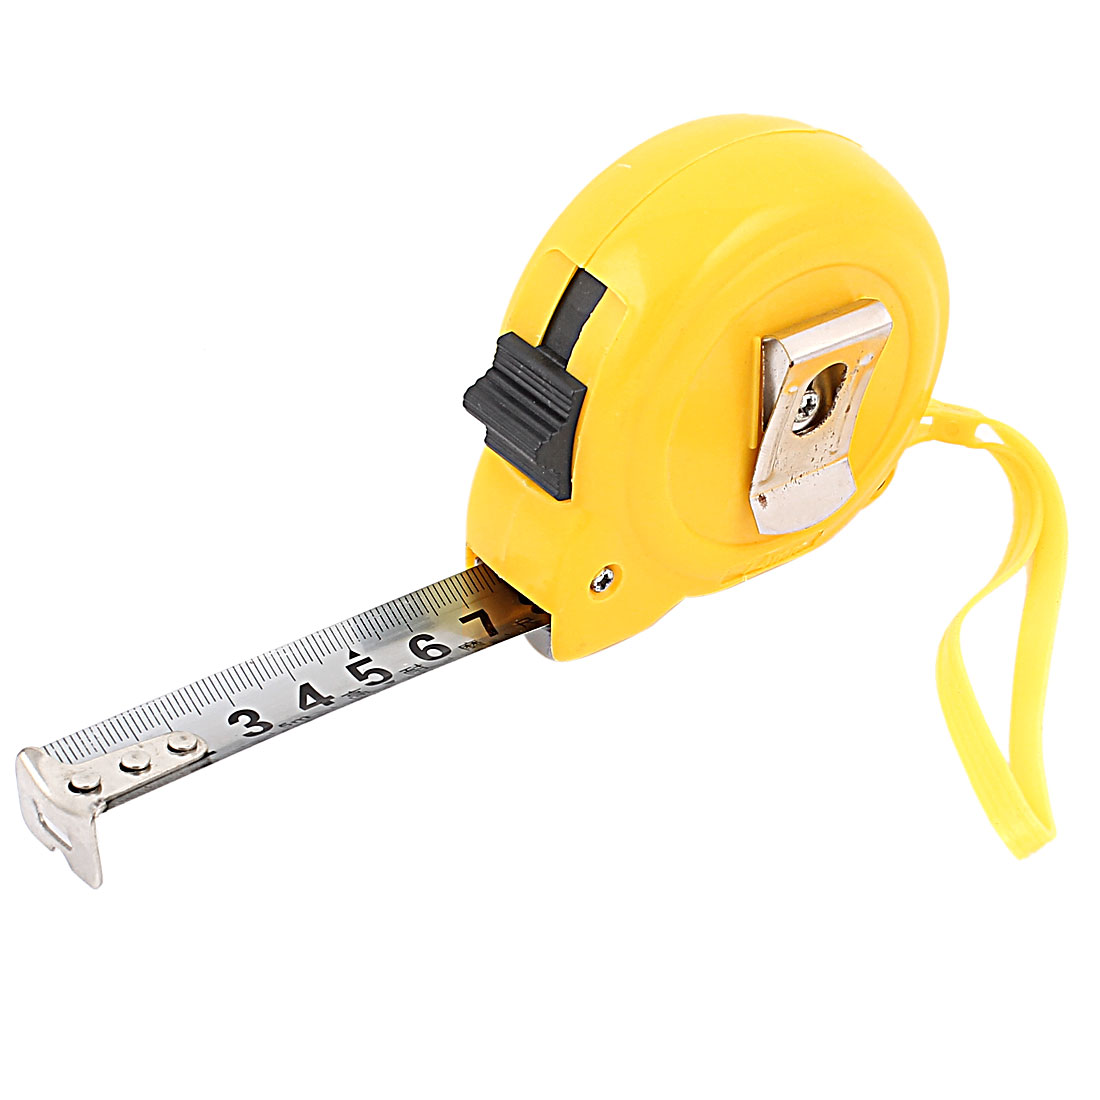 5M Yellow Housing Retractable Lock Button Belt Clip Ruler Metric Tape Measuring Tool w String